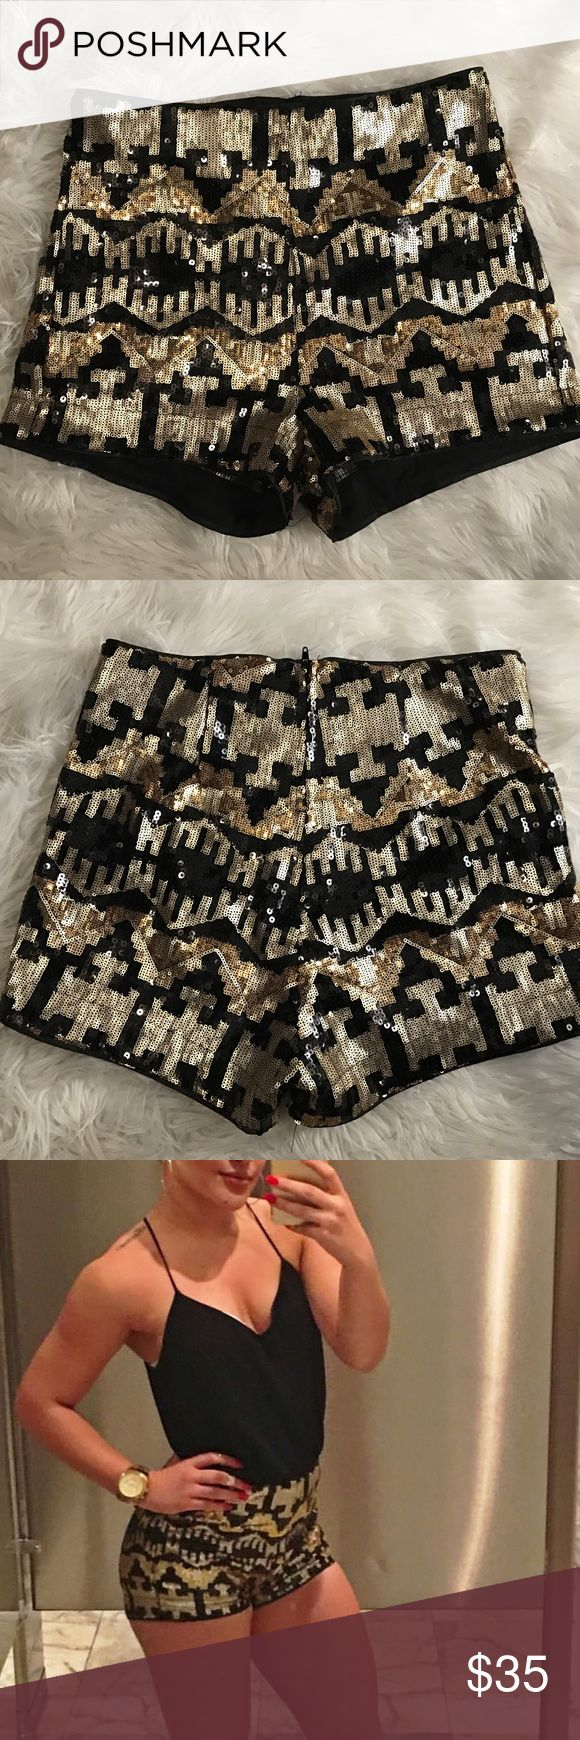 "Gold/Black Sequin shorts H&M ""Divided"" Short sequined mesh shorts with a high waist and concealed zip at the back. Jersey lining. Worn only ONCE, in the photo above! These shorts are gorgeous and they no longer fit. Size 36/6  ❌NO TRADES! 💸 Offers accepted! H&M Shorts"